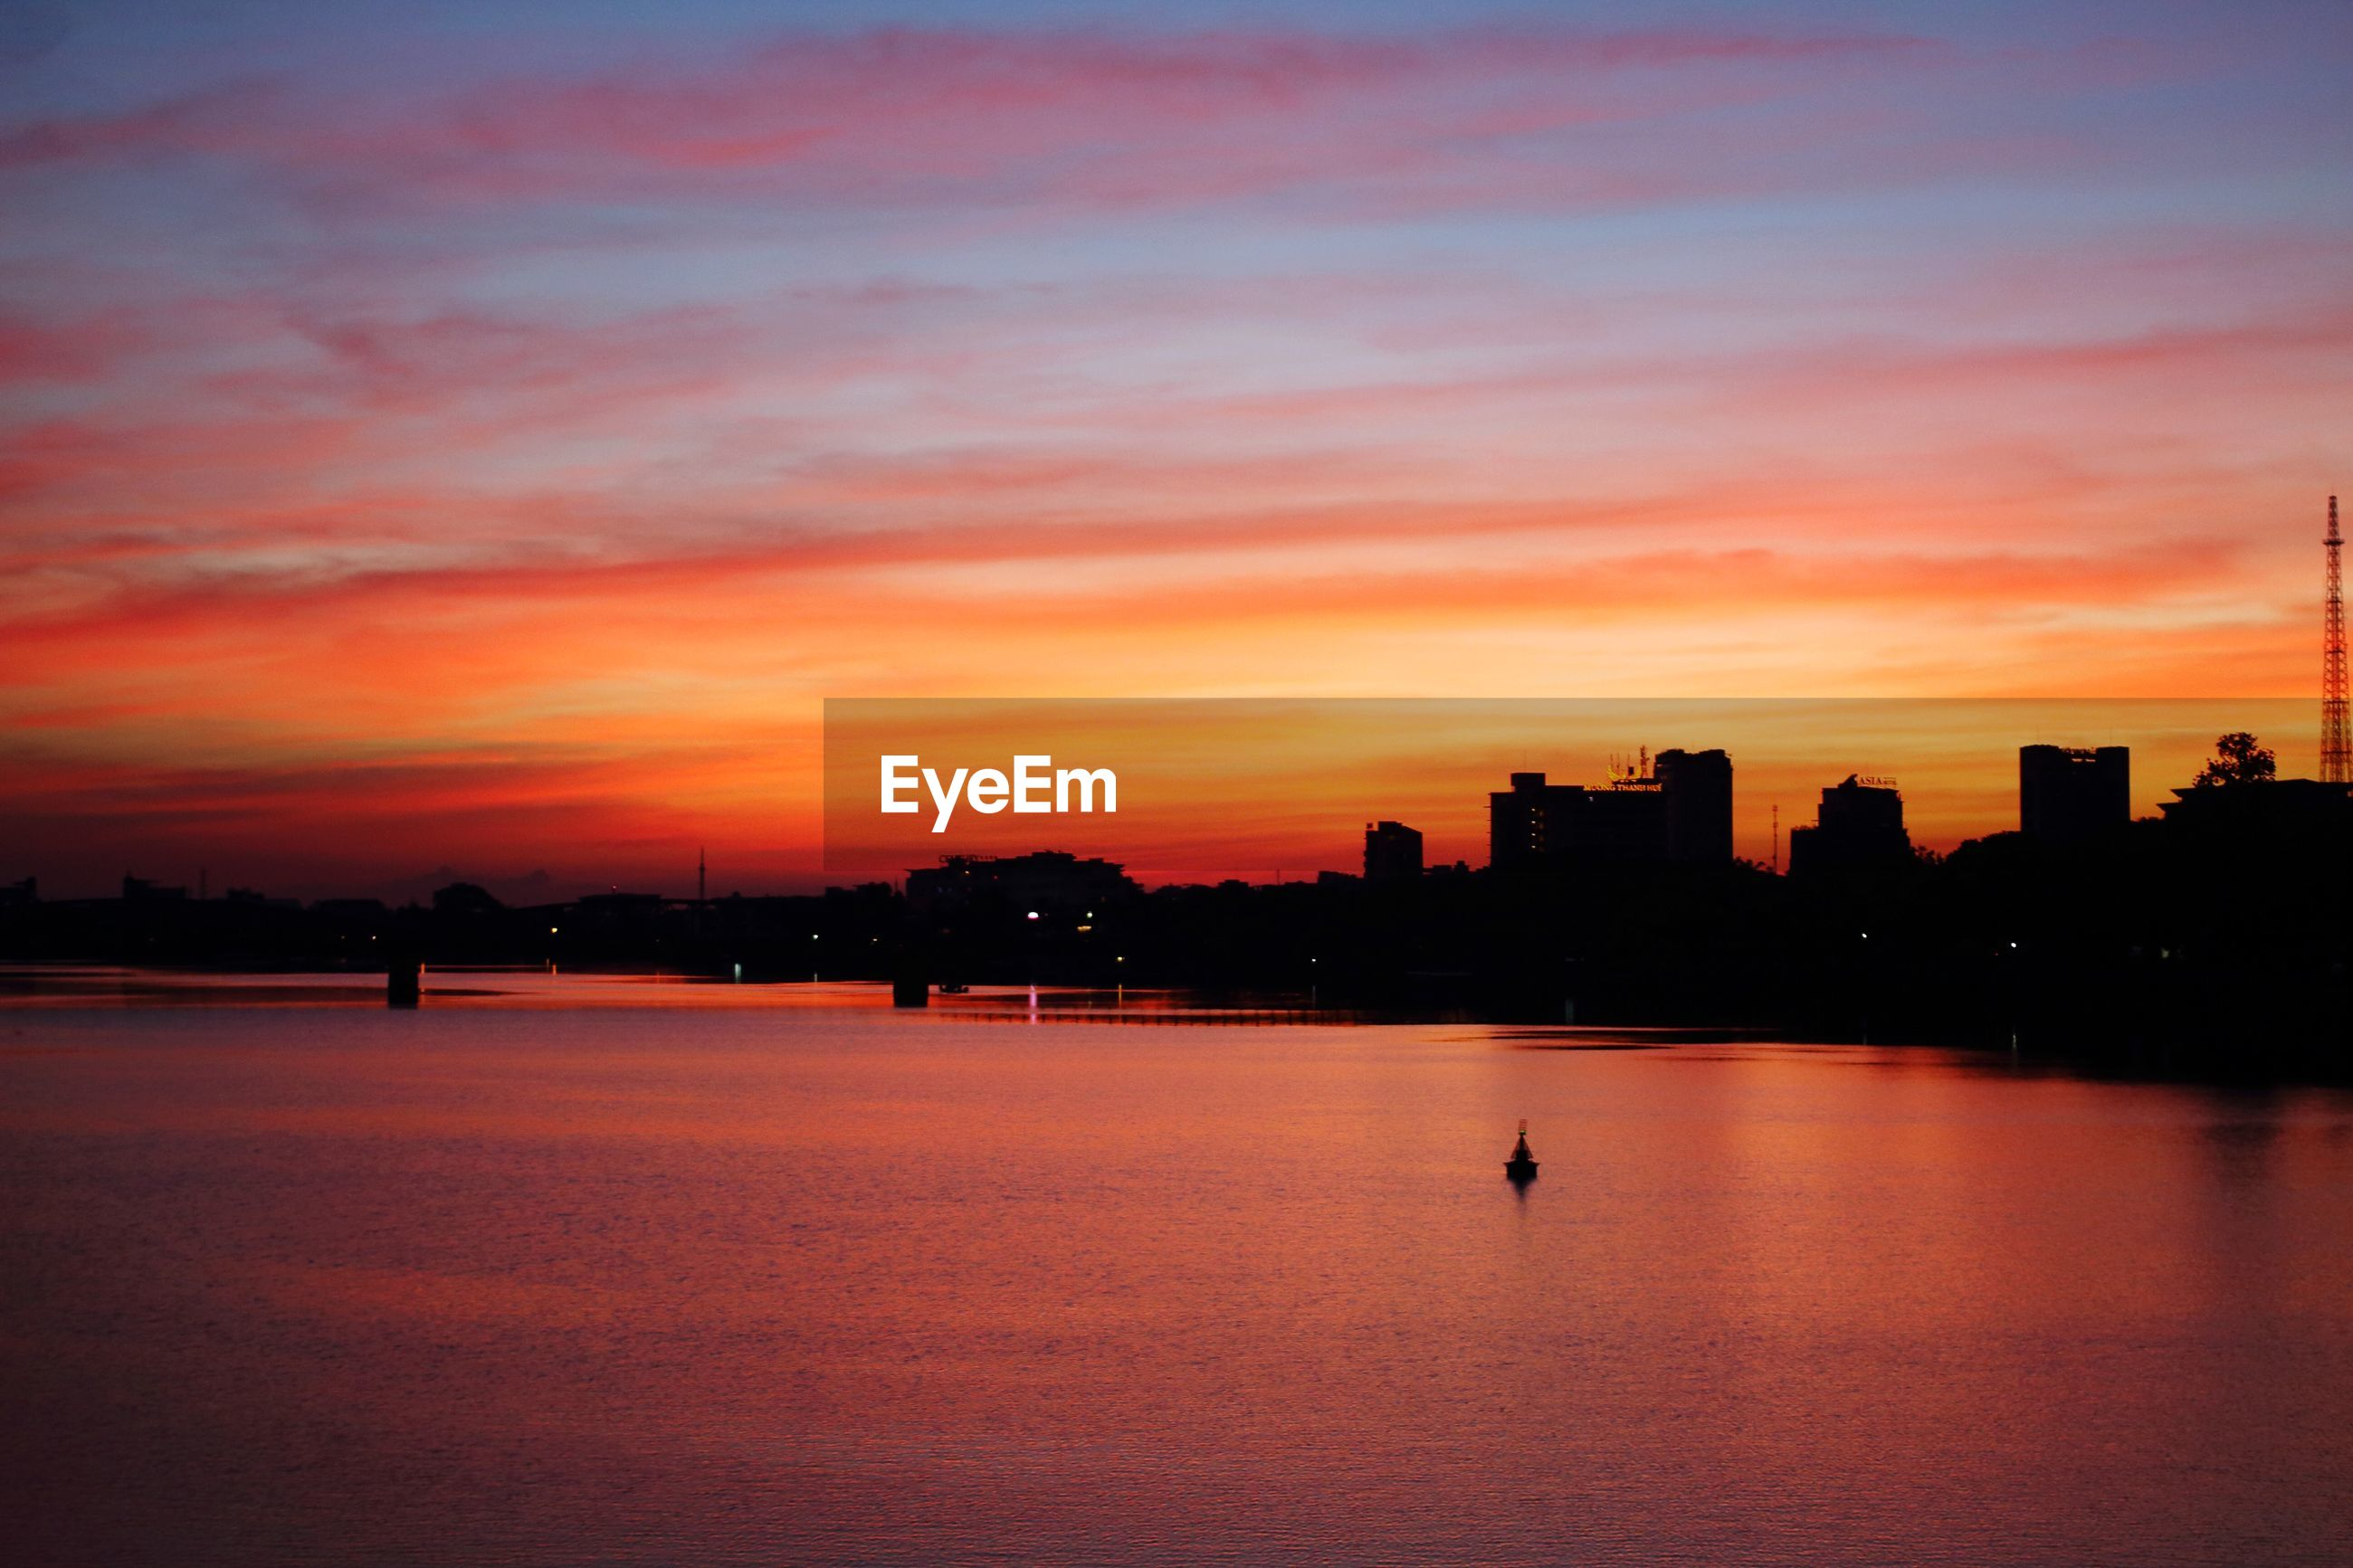 SCENIC VIEW OF SILHOUETTE BUILDINGS DURING SUNSET